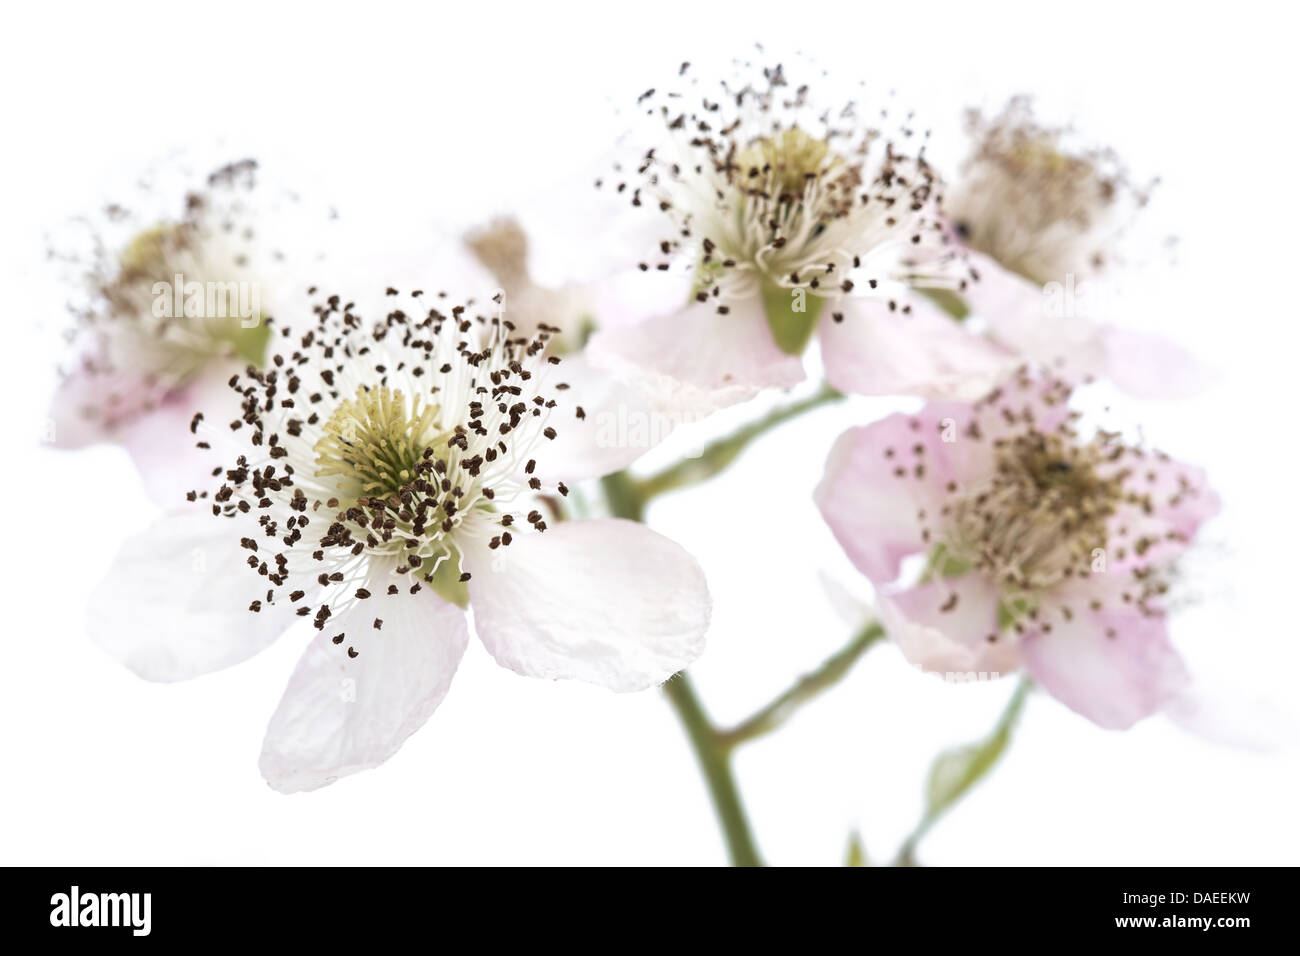 Blackberry Blossom Flowers On A White Background Stock Photo